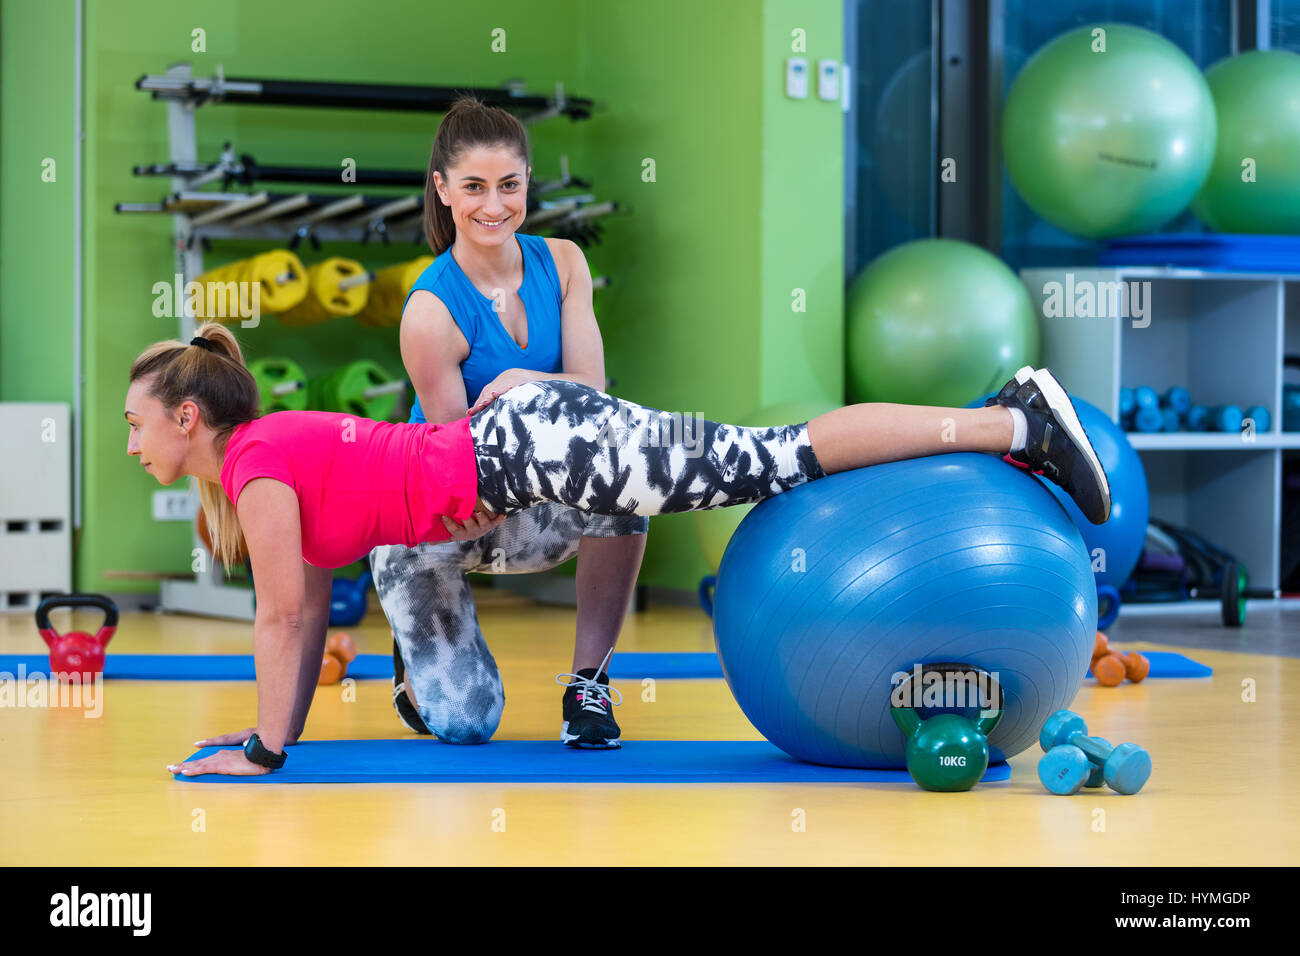 Trainer helping woman in doing exercise on ball - Stock Image